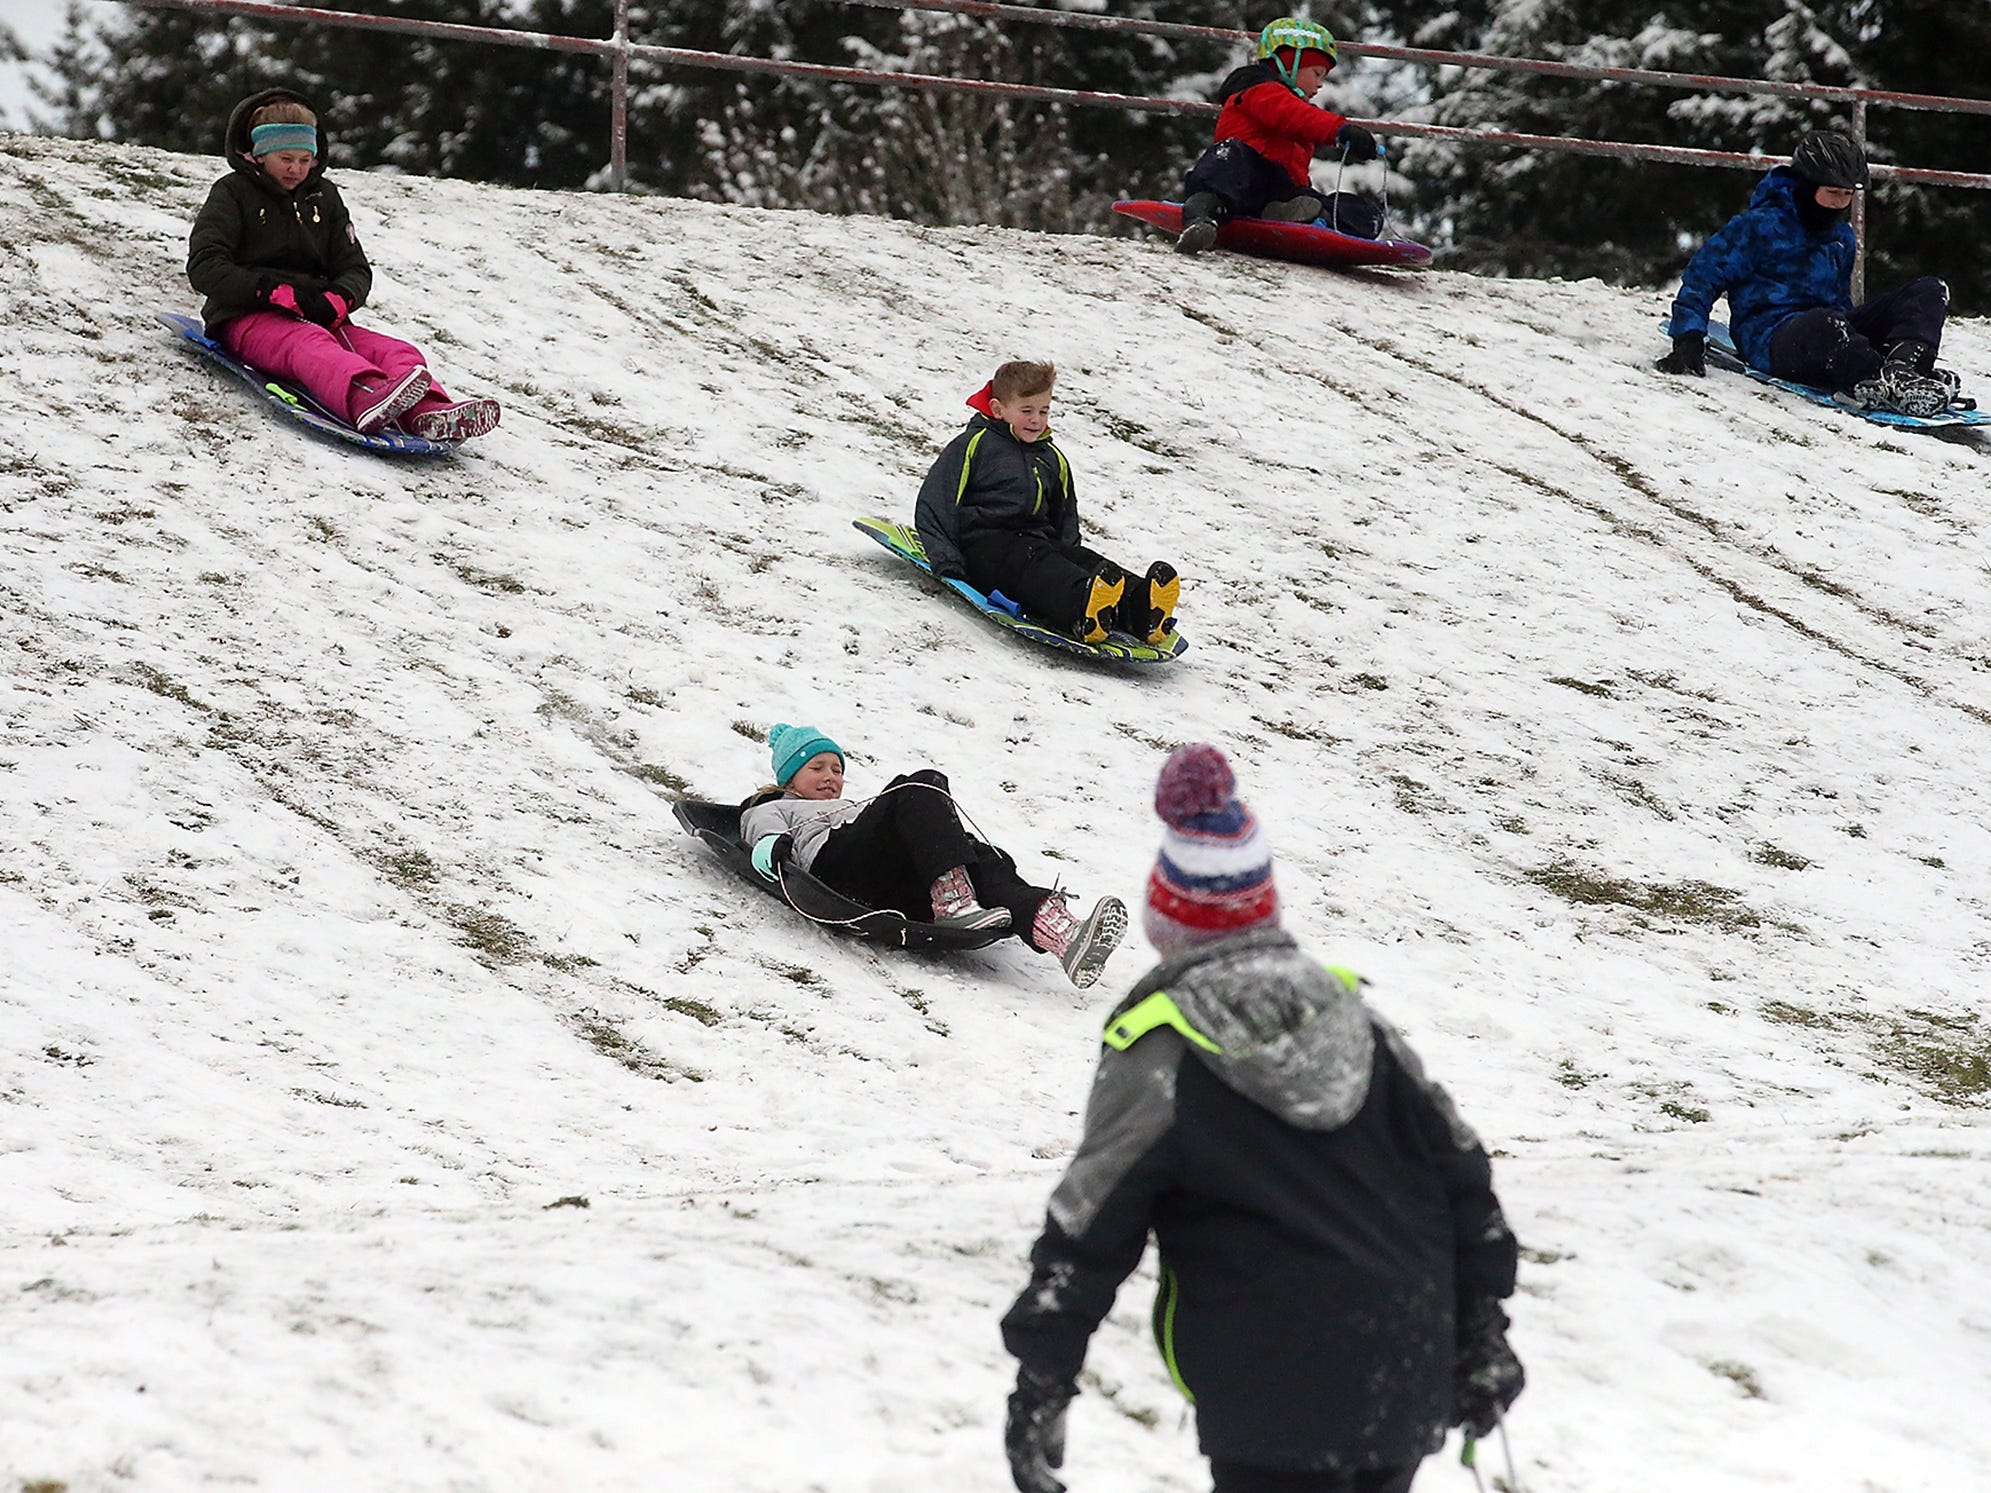 The snow wearing away to reveal the grass beneath doesn't deter (left to right) Bailey O'Brien, 11, Madison Fairchild, 10, and Easton O'Brien, 8, from racing their sleds down the hill at Silver Ridge Elementary School in Silverdale on Monday, February 4, 2019.